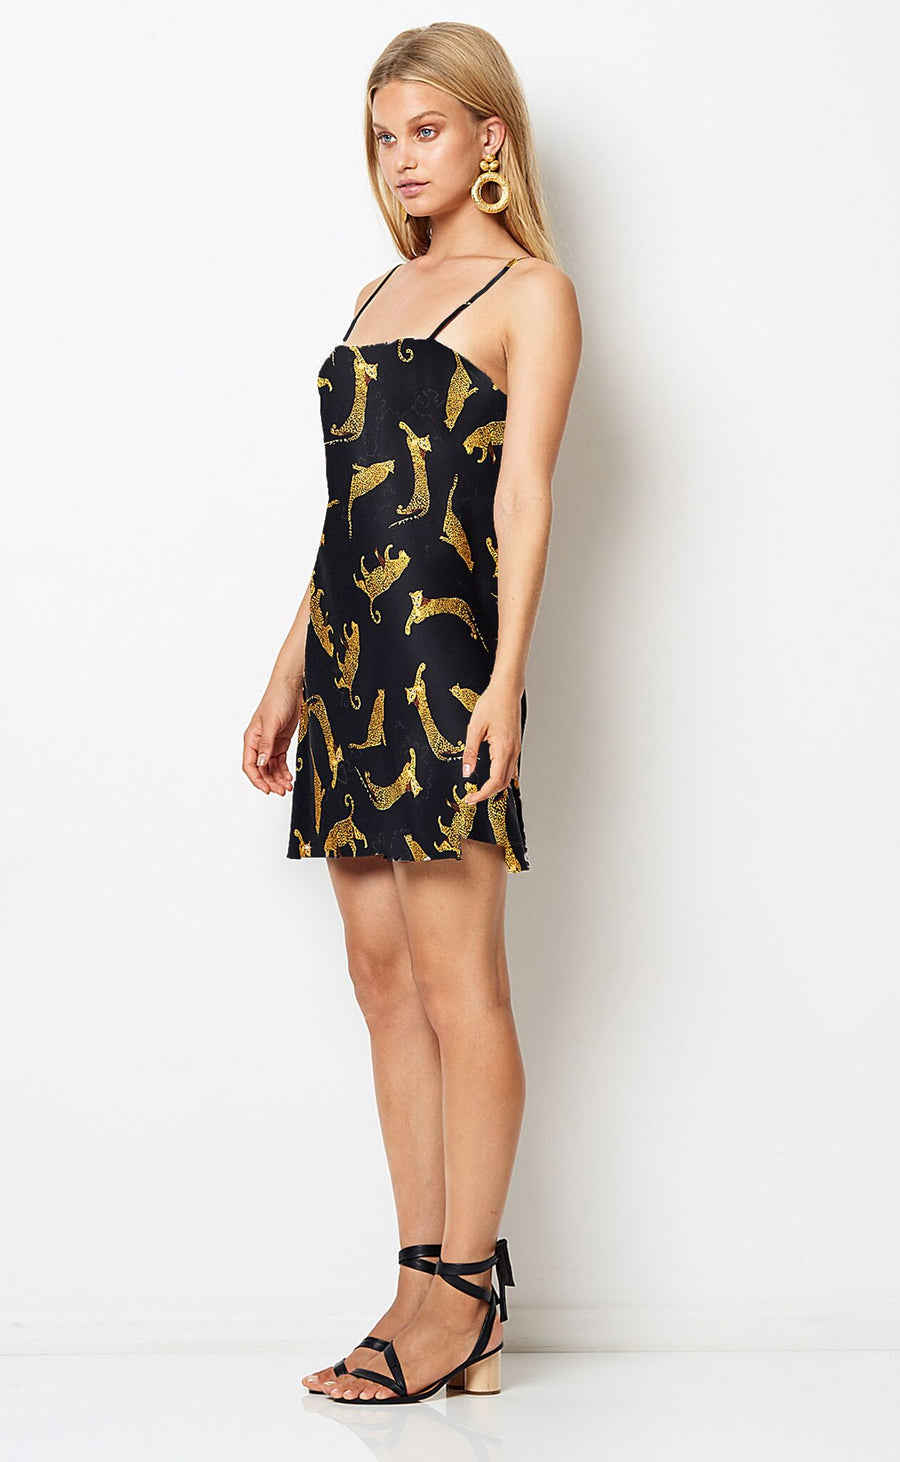 BEC & BRIDGE - Conga Beat Mini Dress